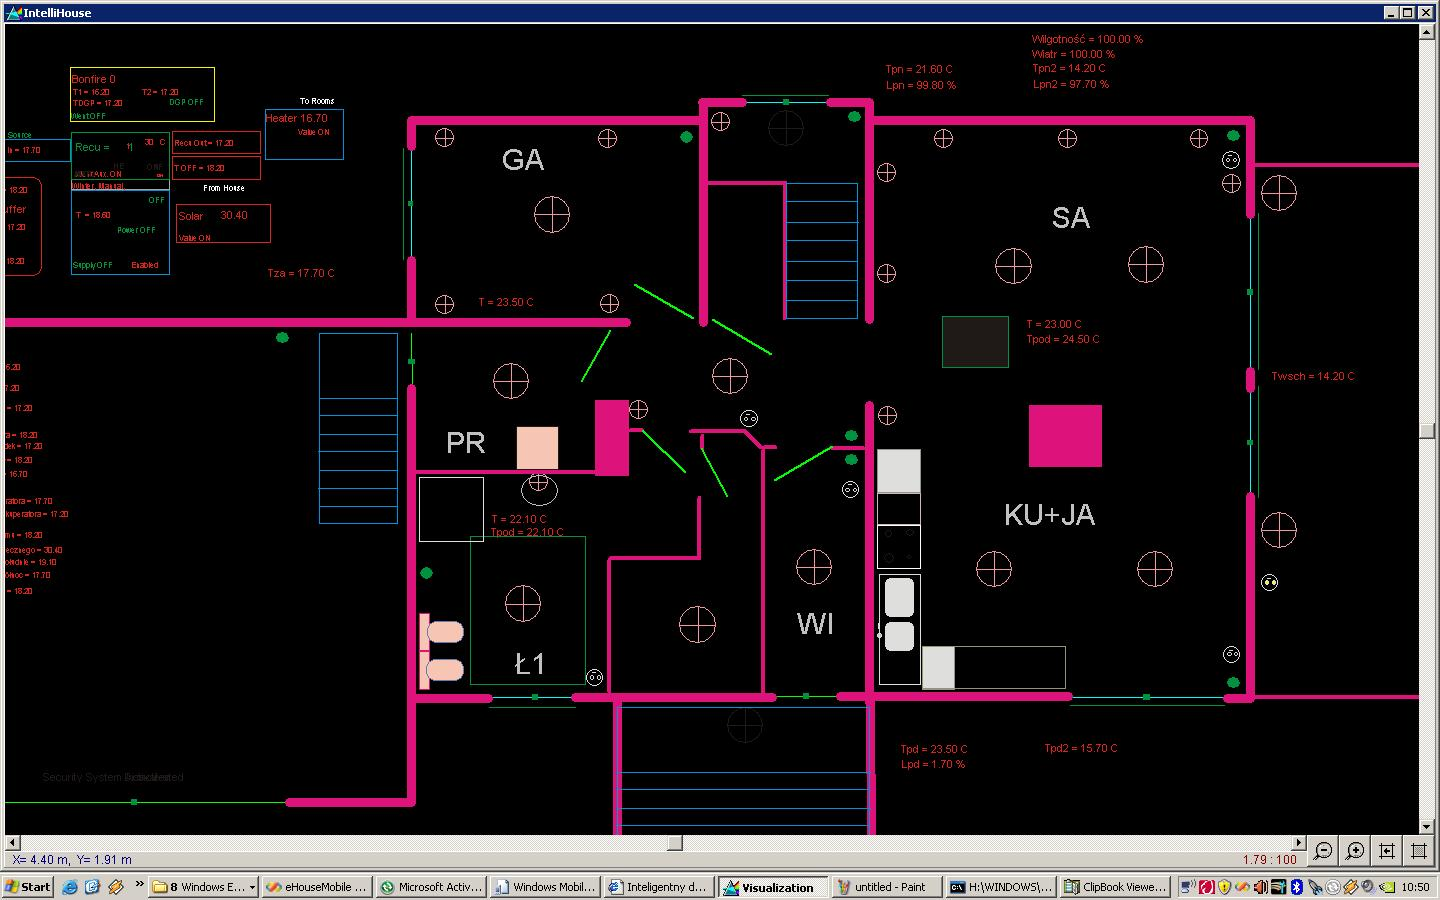 Ehouse Home Automation Building Management System